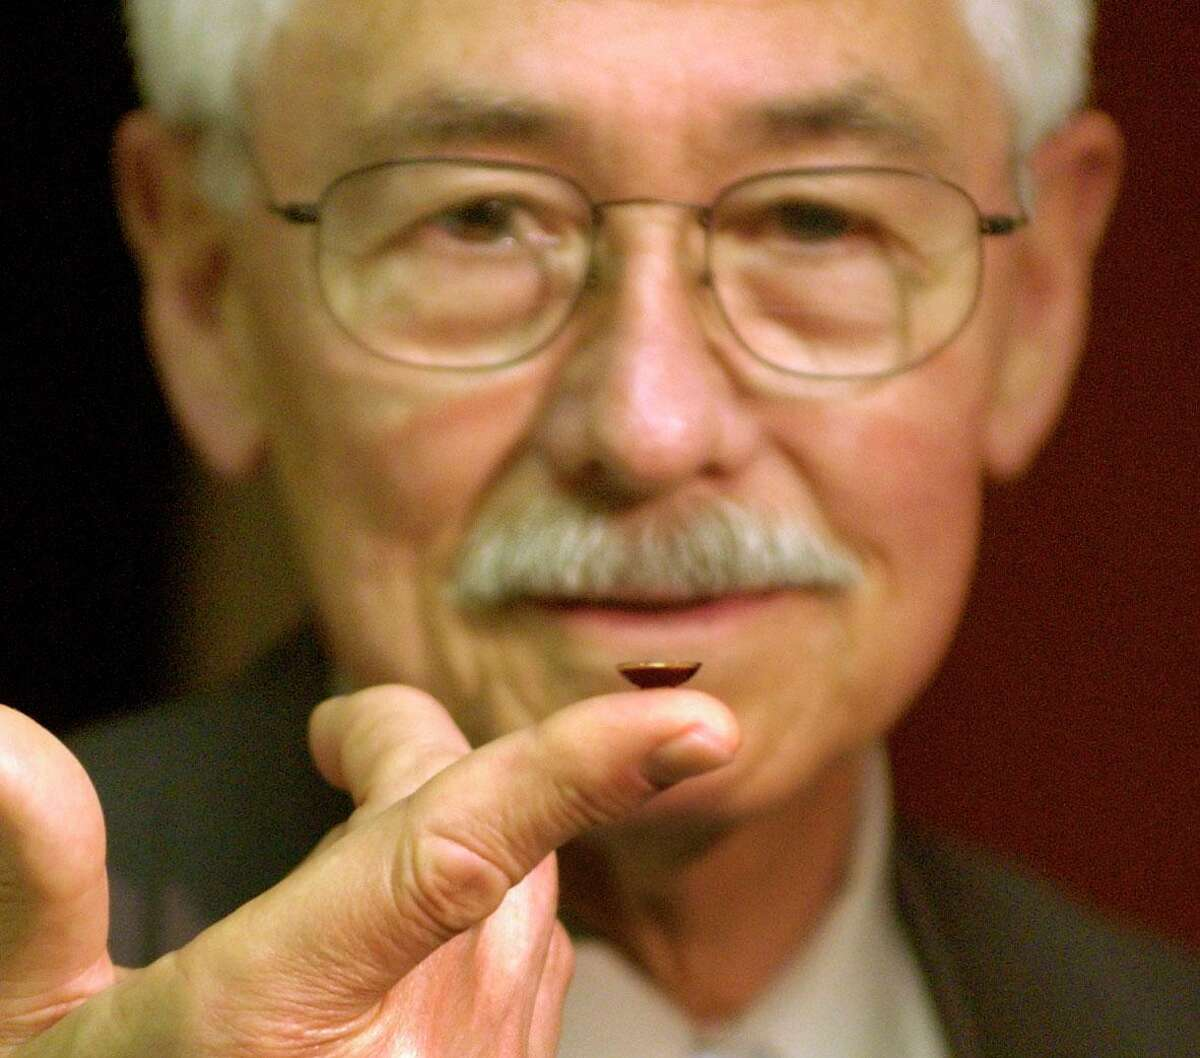 In this undated archive photo, Dr. Richard Ruiz, chairman of the Ophthalmology Department at the University of Texas Health Science Center at Houston, holds a contact lens that study participants say gives immediate relief from migraines.